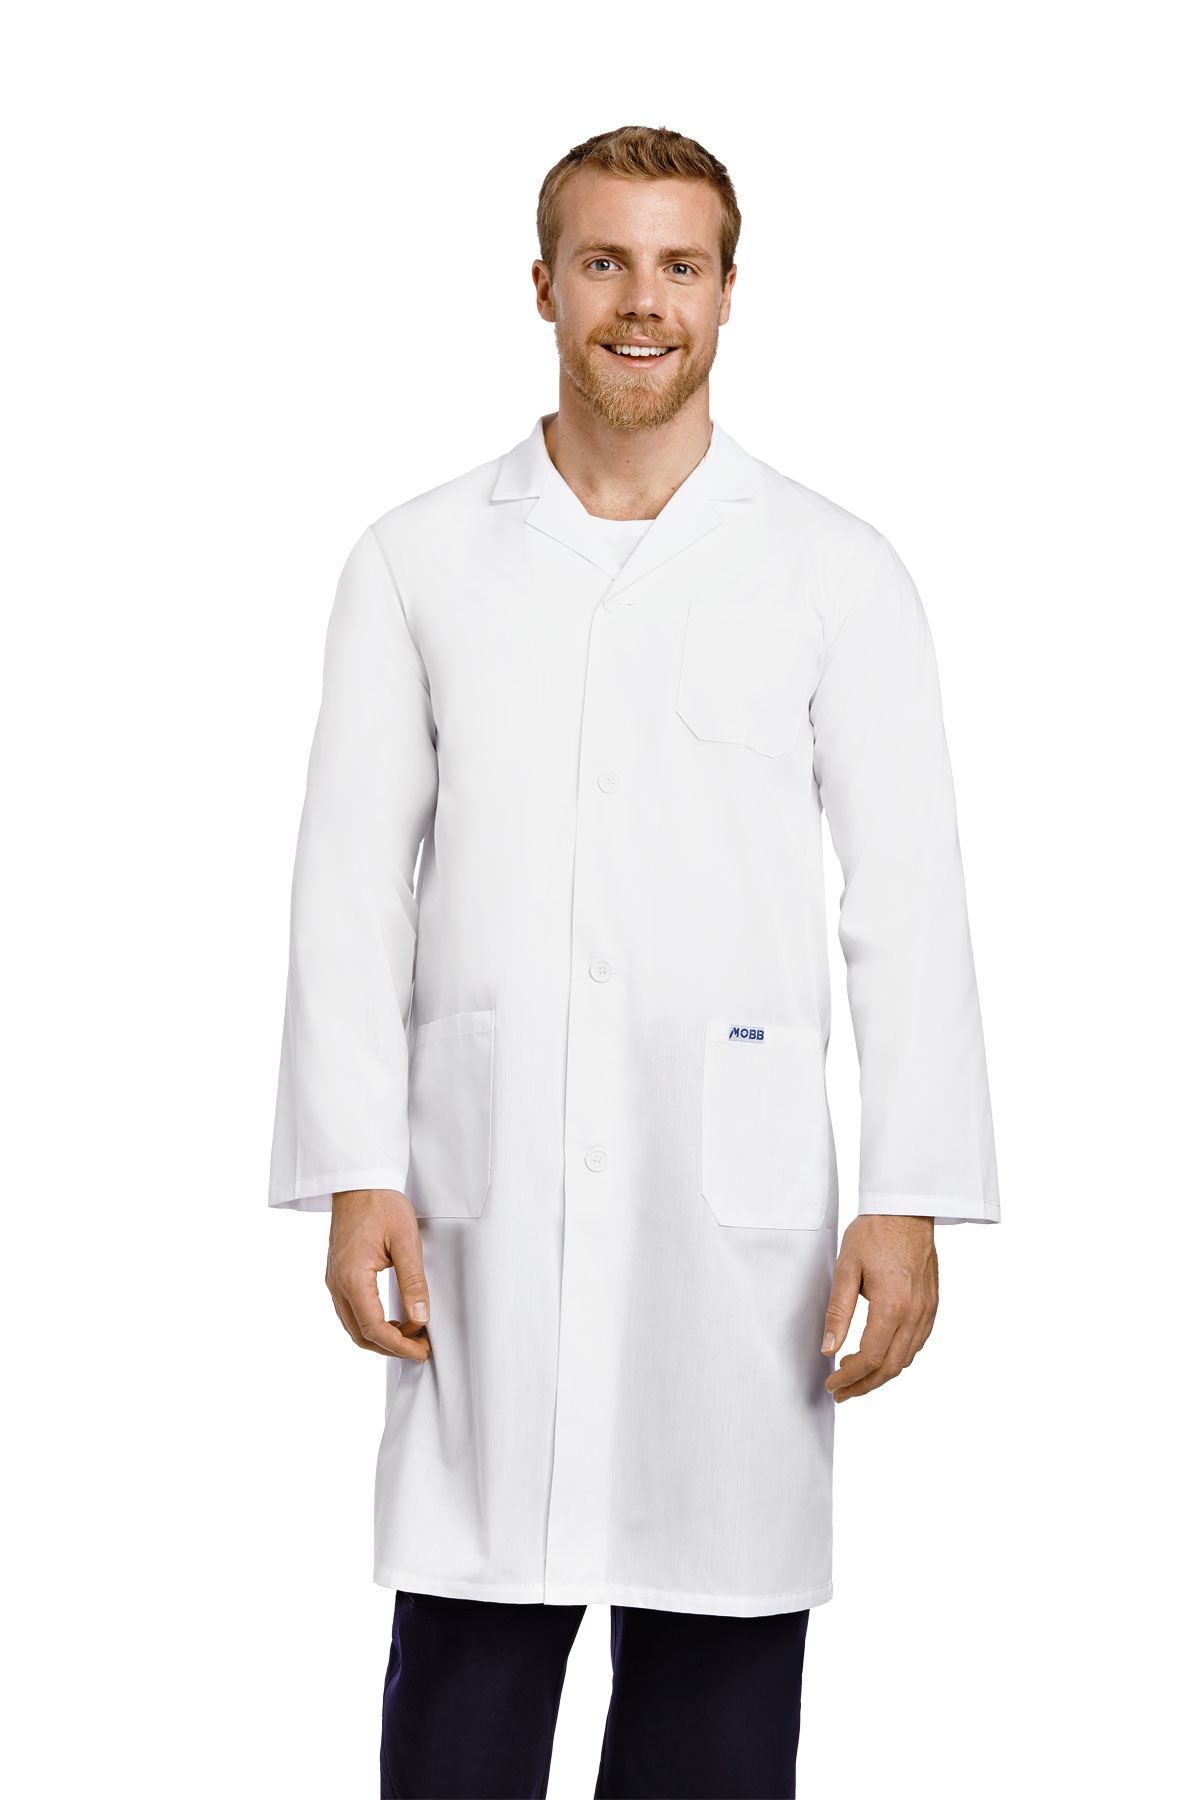 LabCoat-Mob-L506